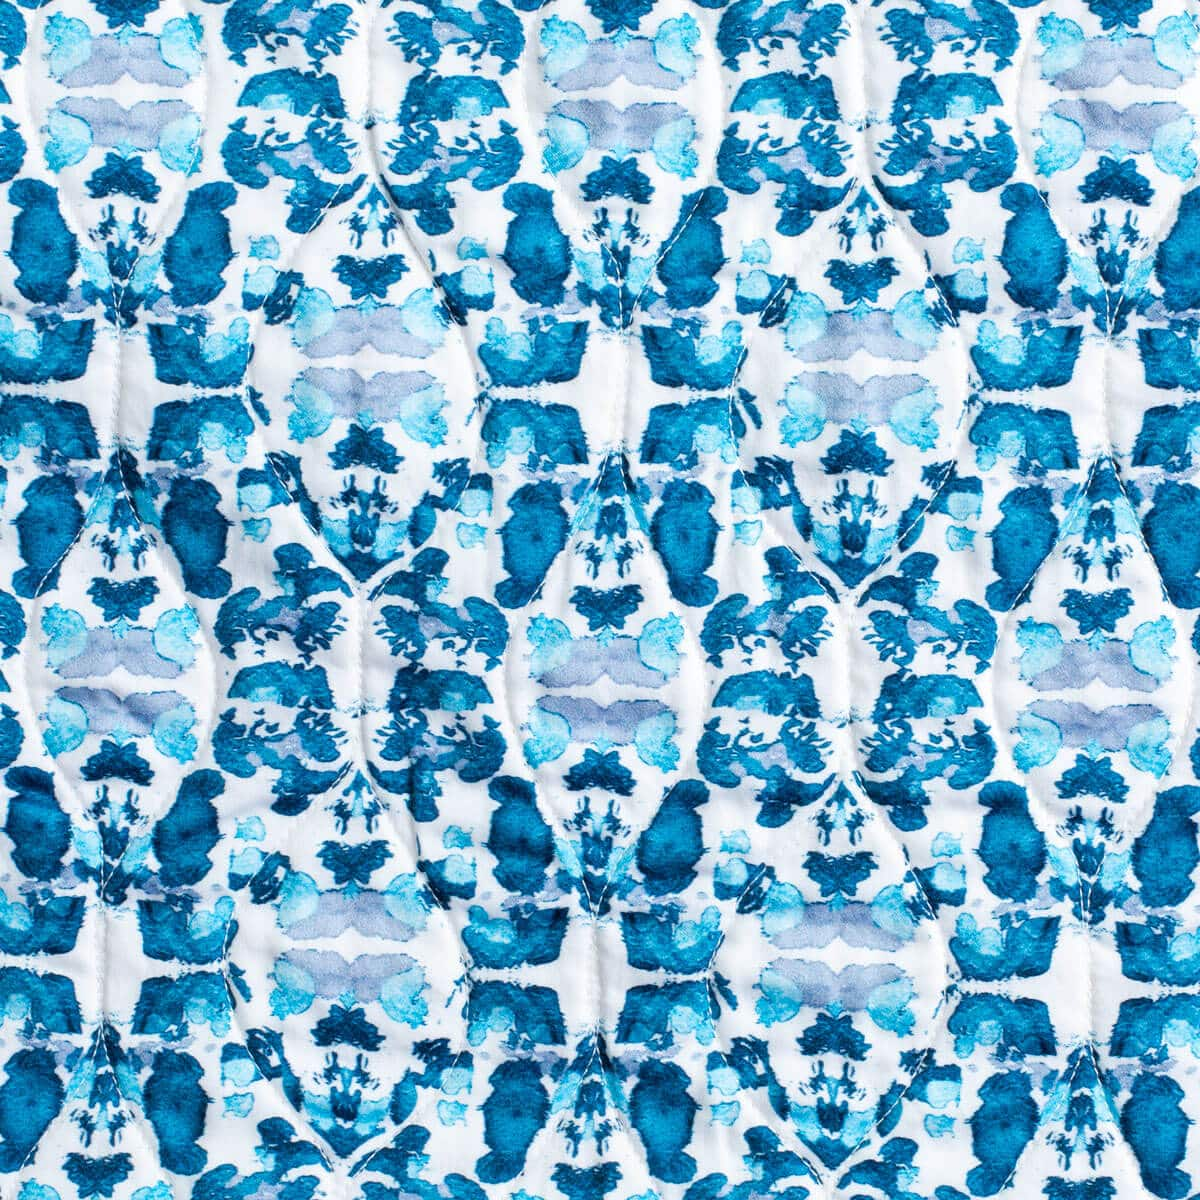 Luxury organic abstract tessellating floral teal quilt pattern detail